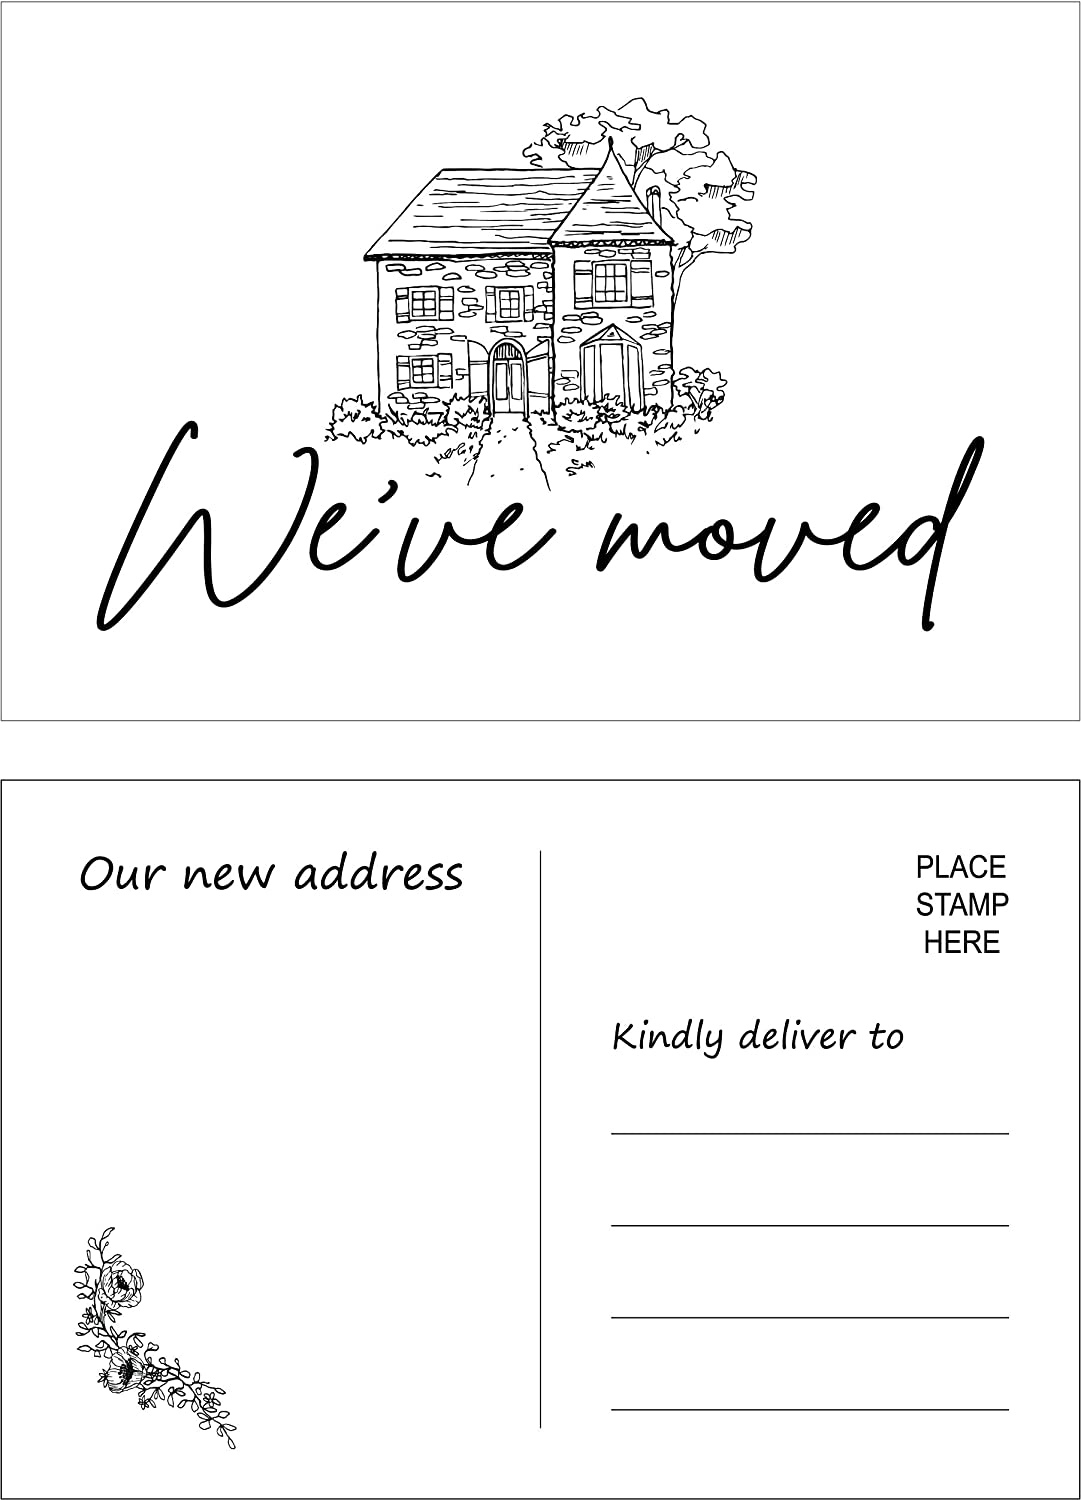 RXBC2011 Over item handling We've moved postcards moving Pack Now on sale announcement of cards